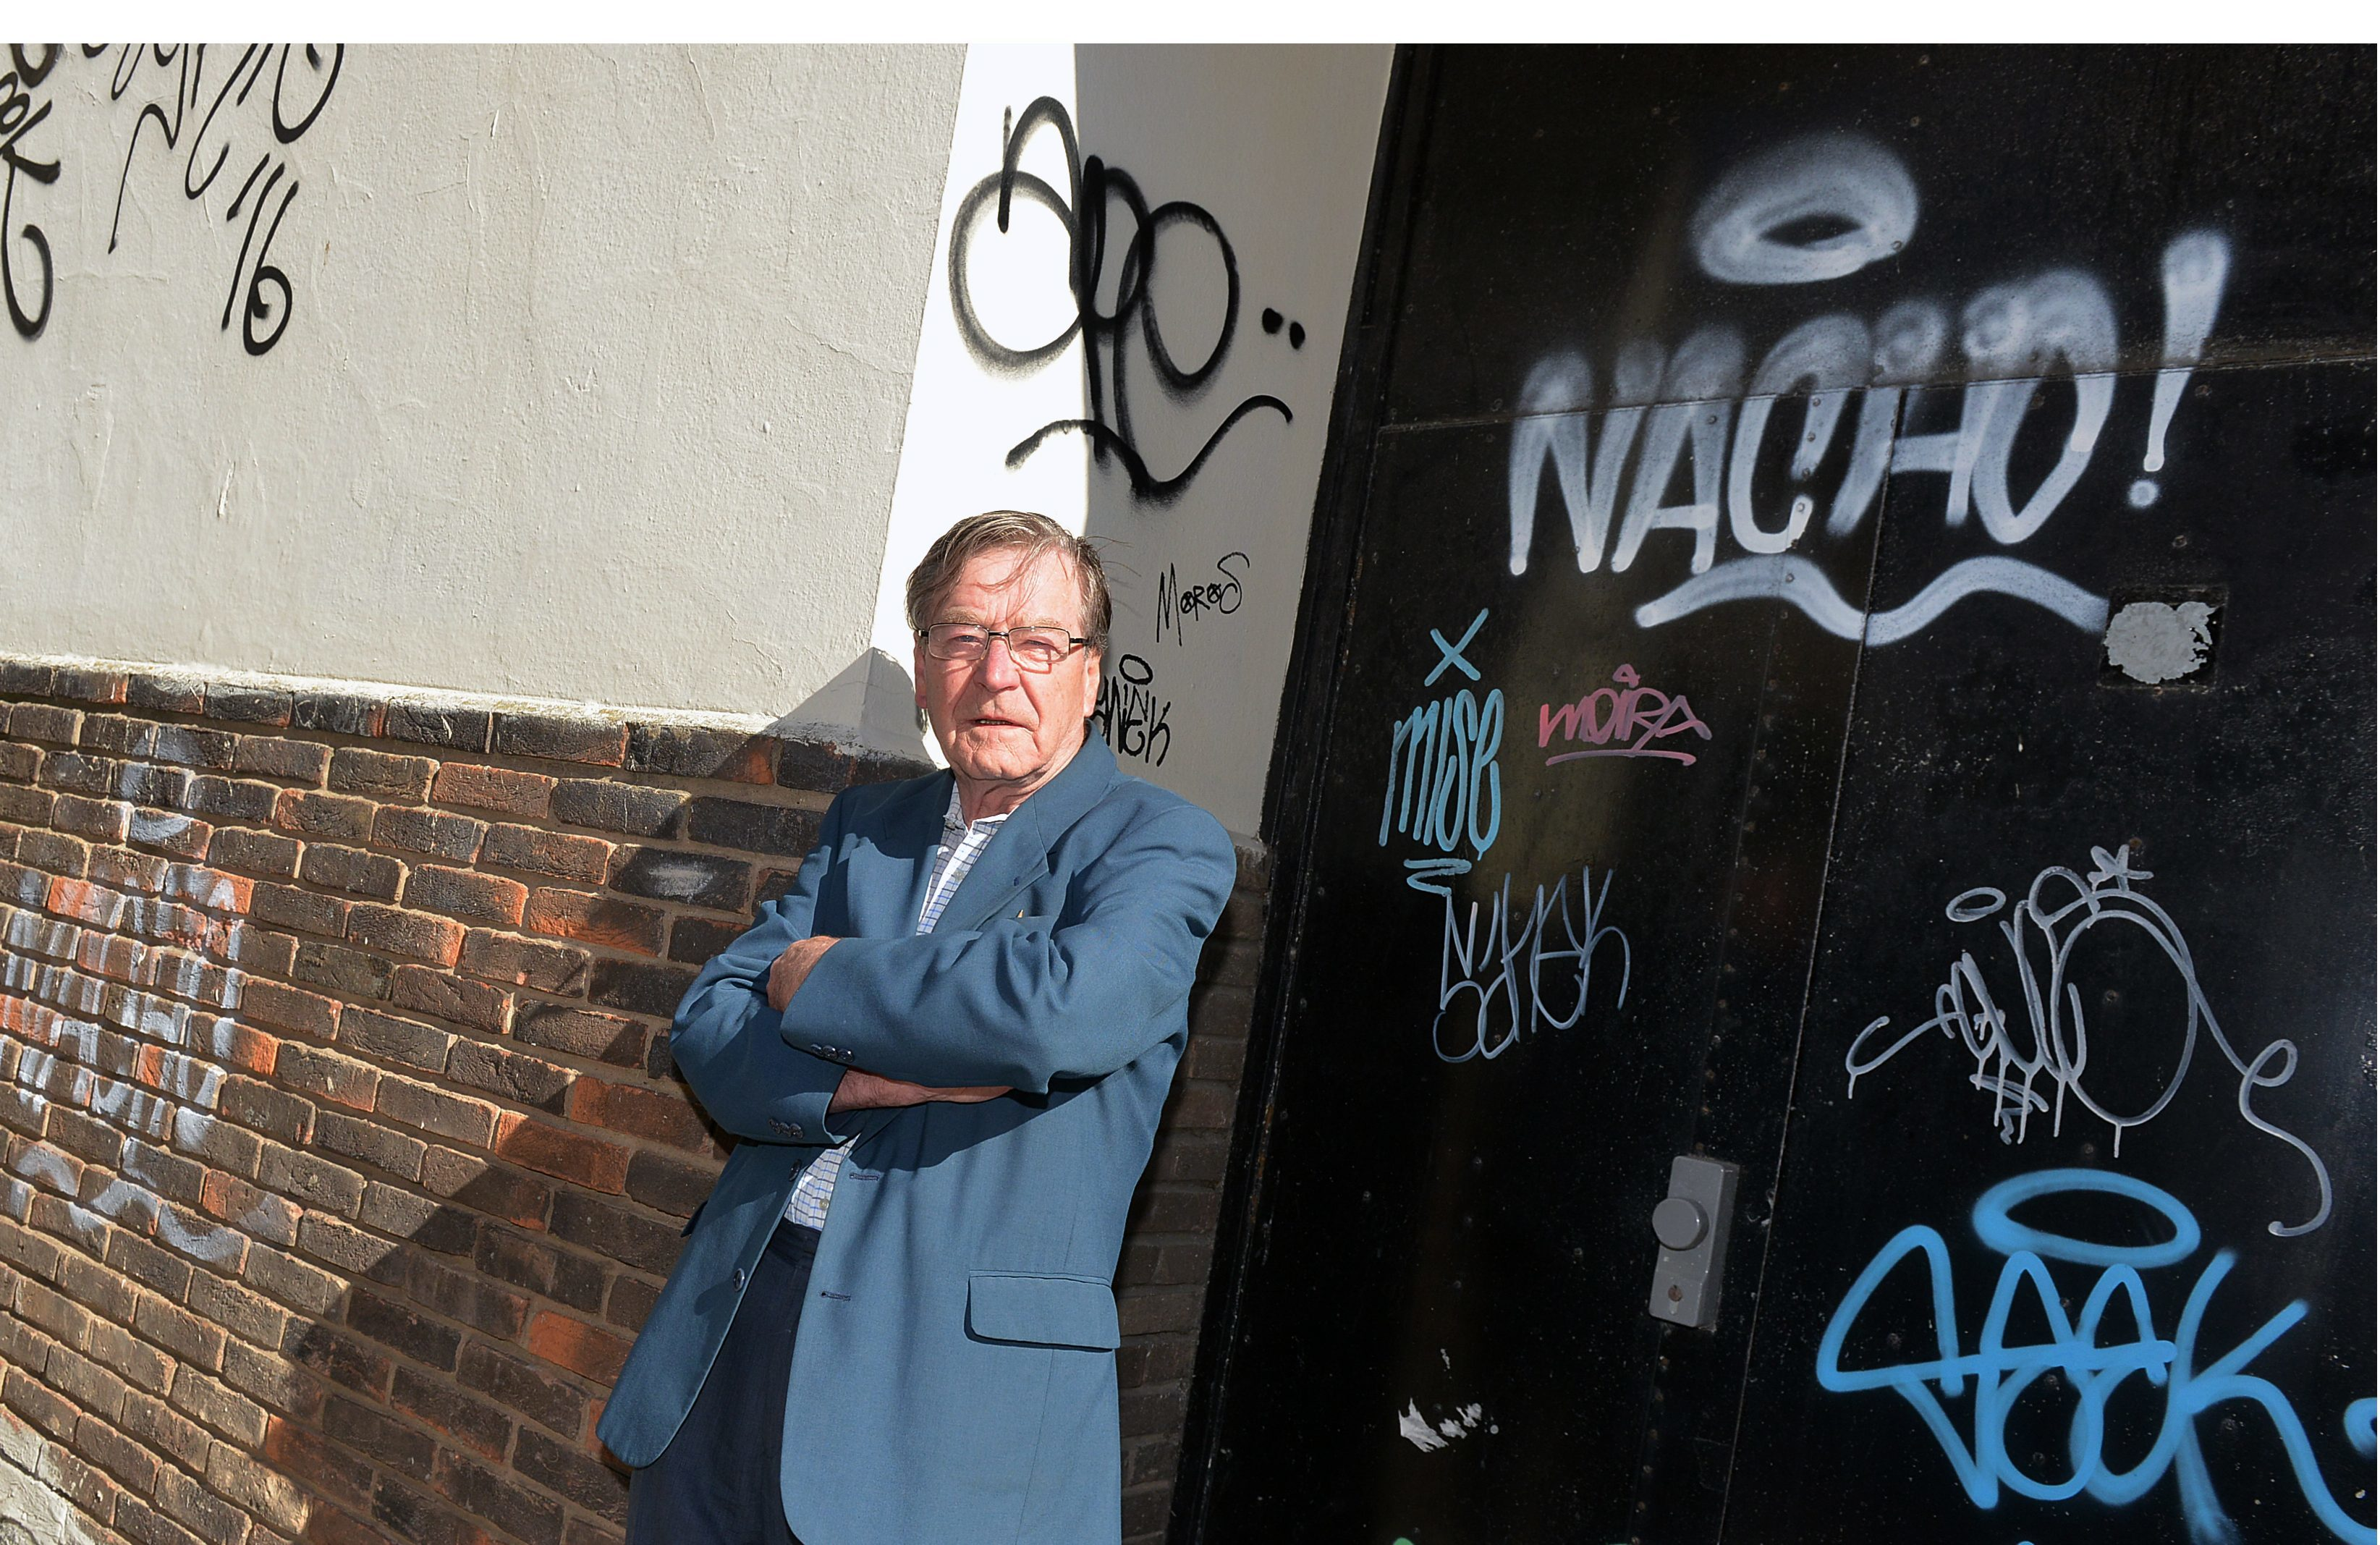 David Henderson, chair of Kirkcaldy West Community Council, next to graffiti in Kirkcaldy town centre.